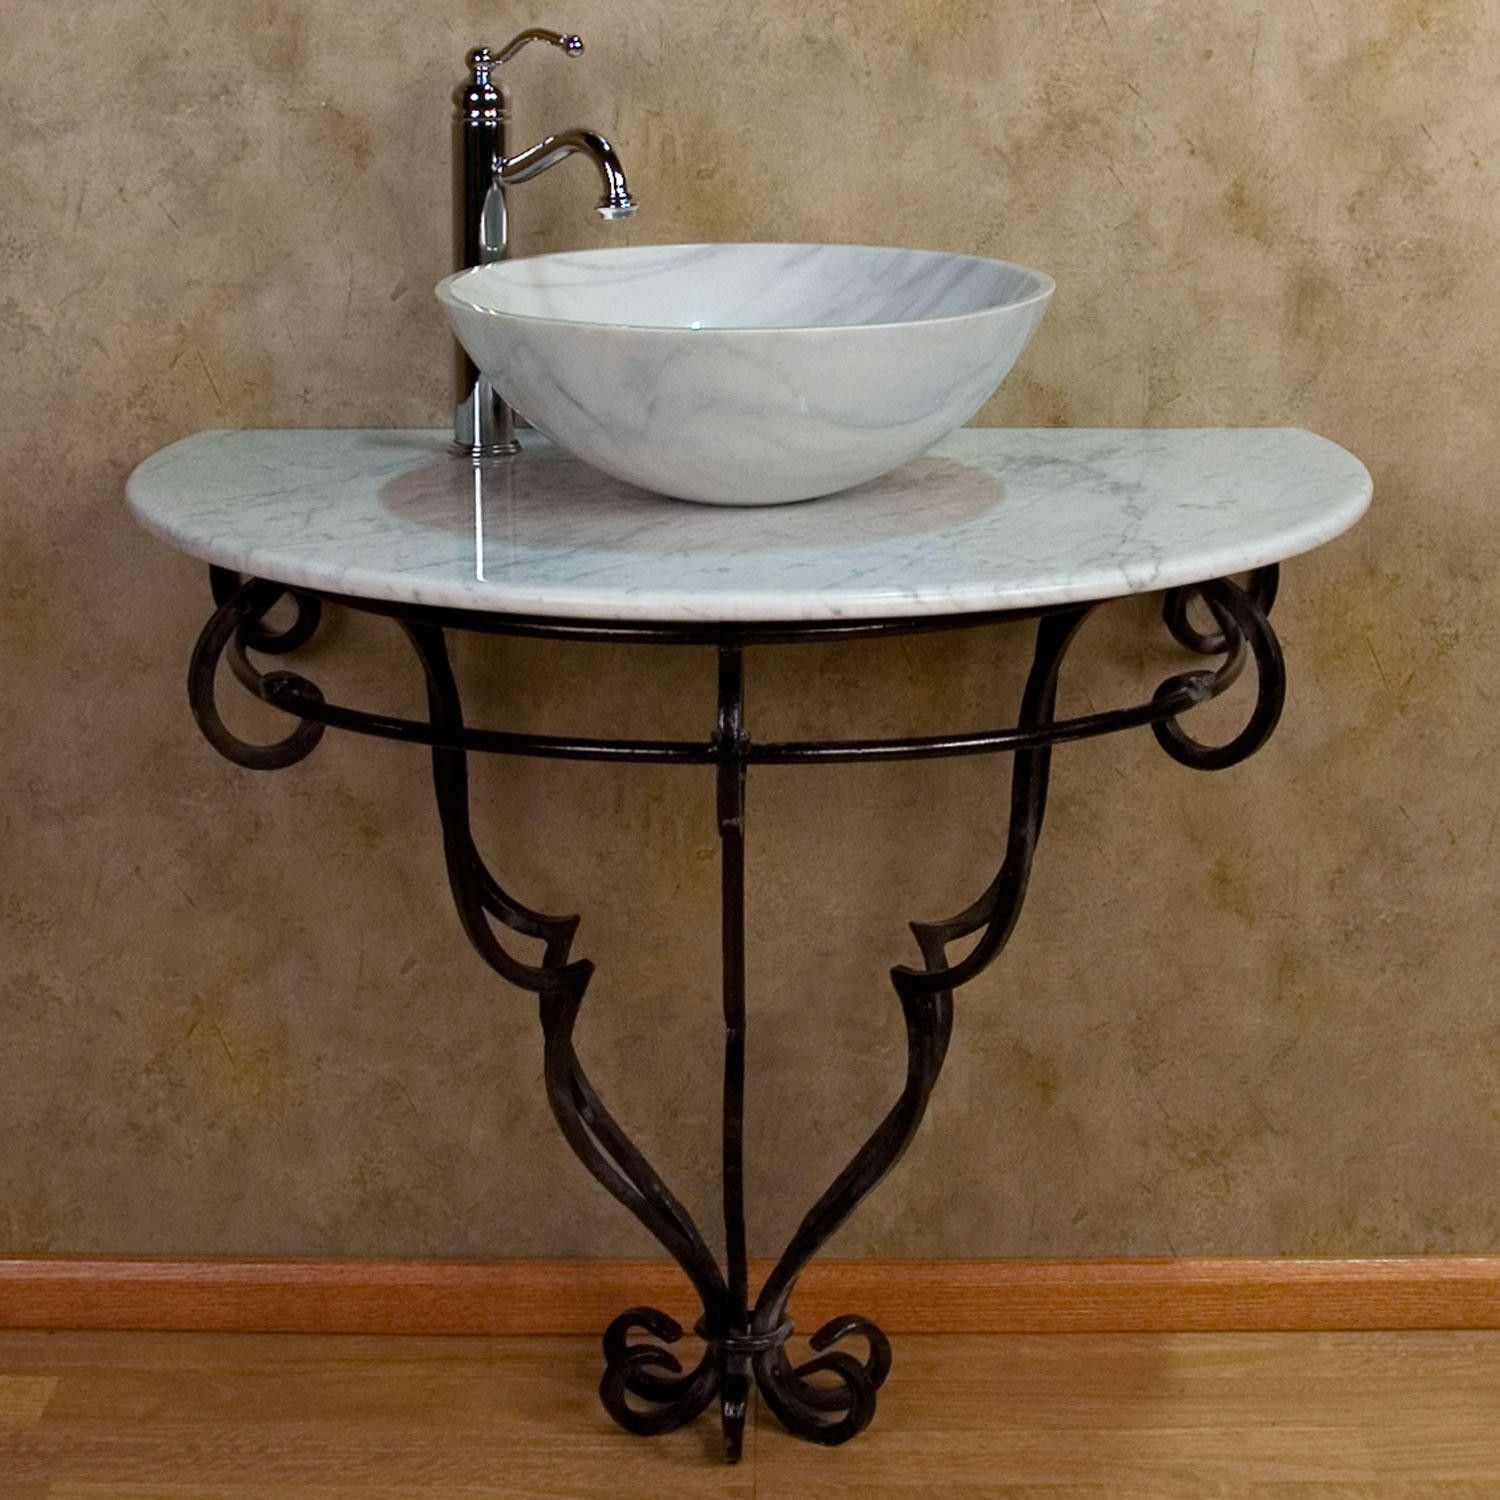 Wall Mount Wrought Iron Console Vanity For Vessel Sink Marble Top